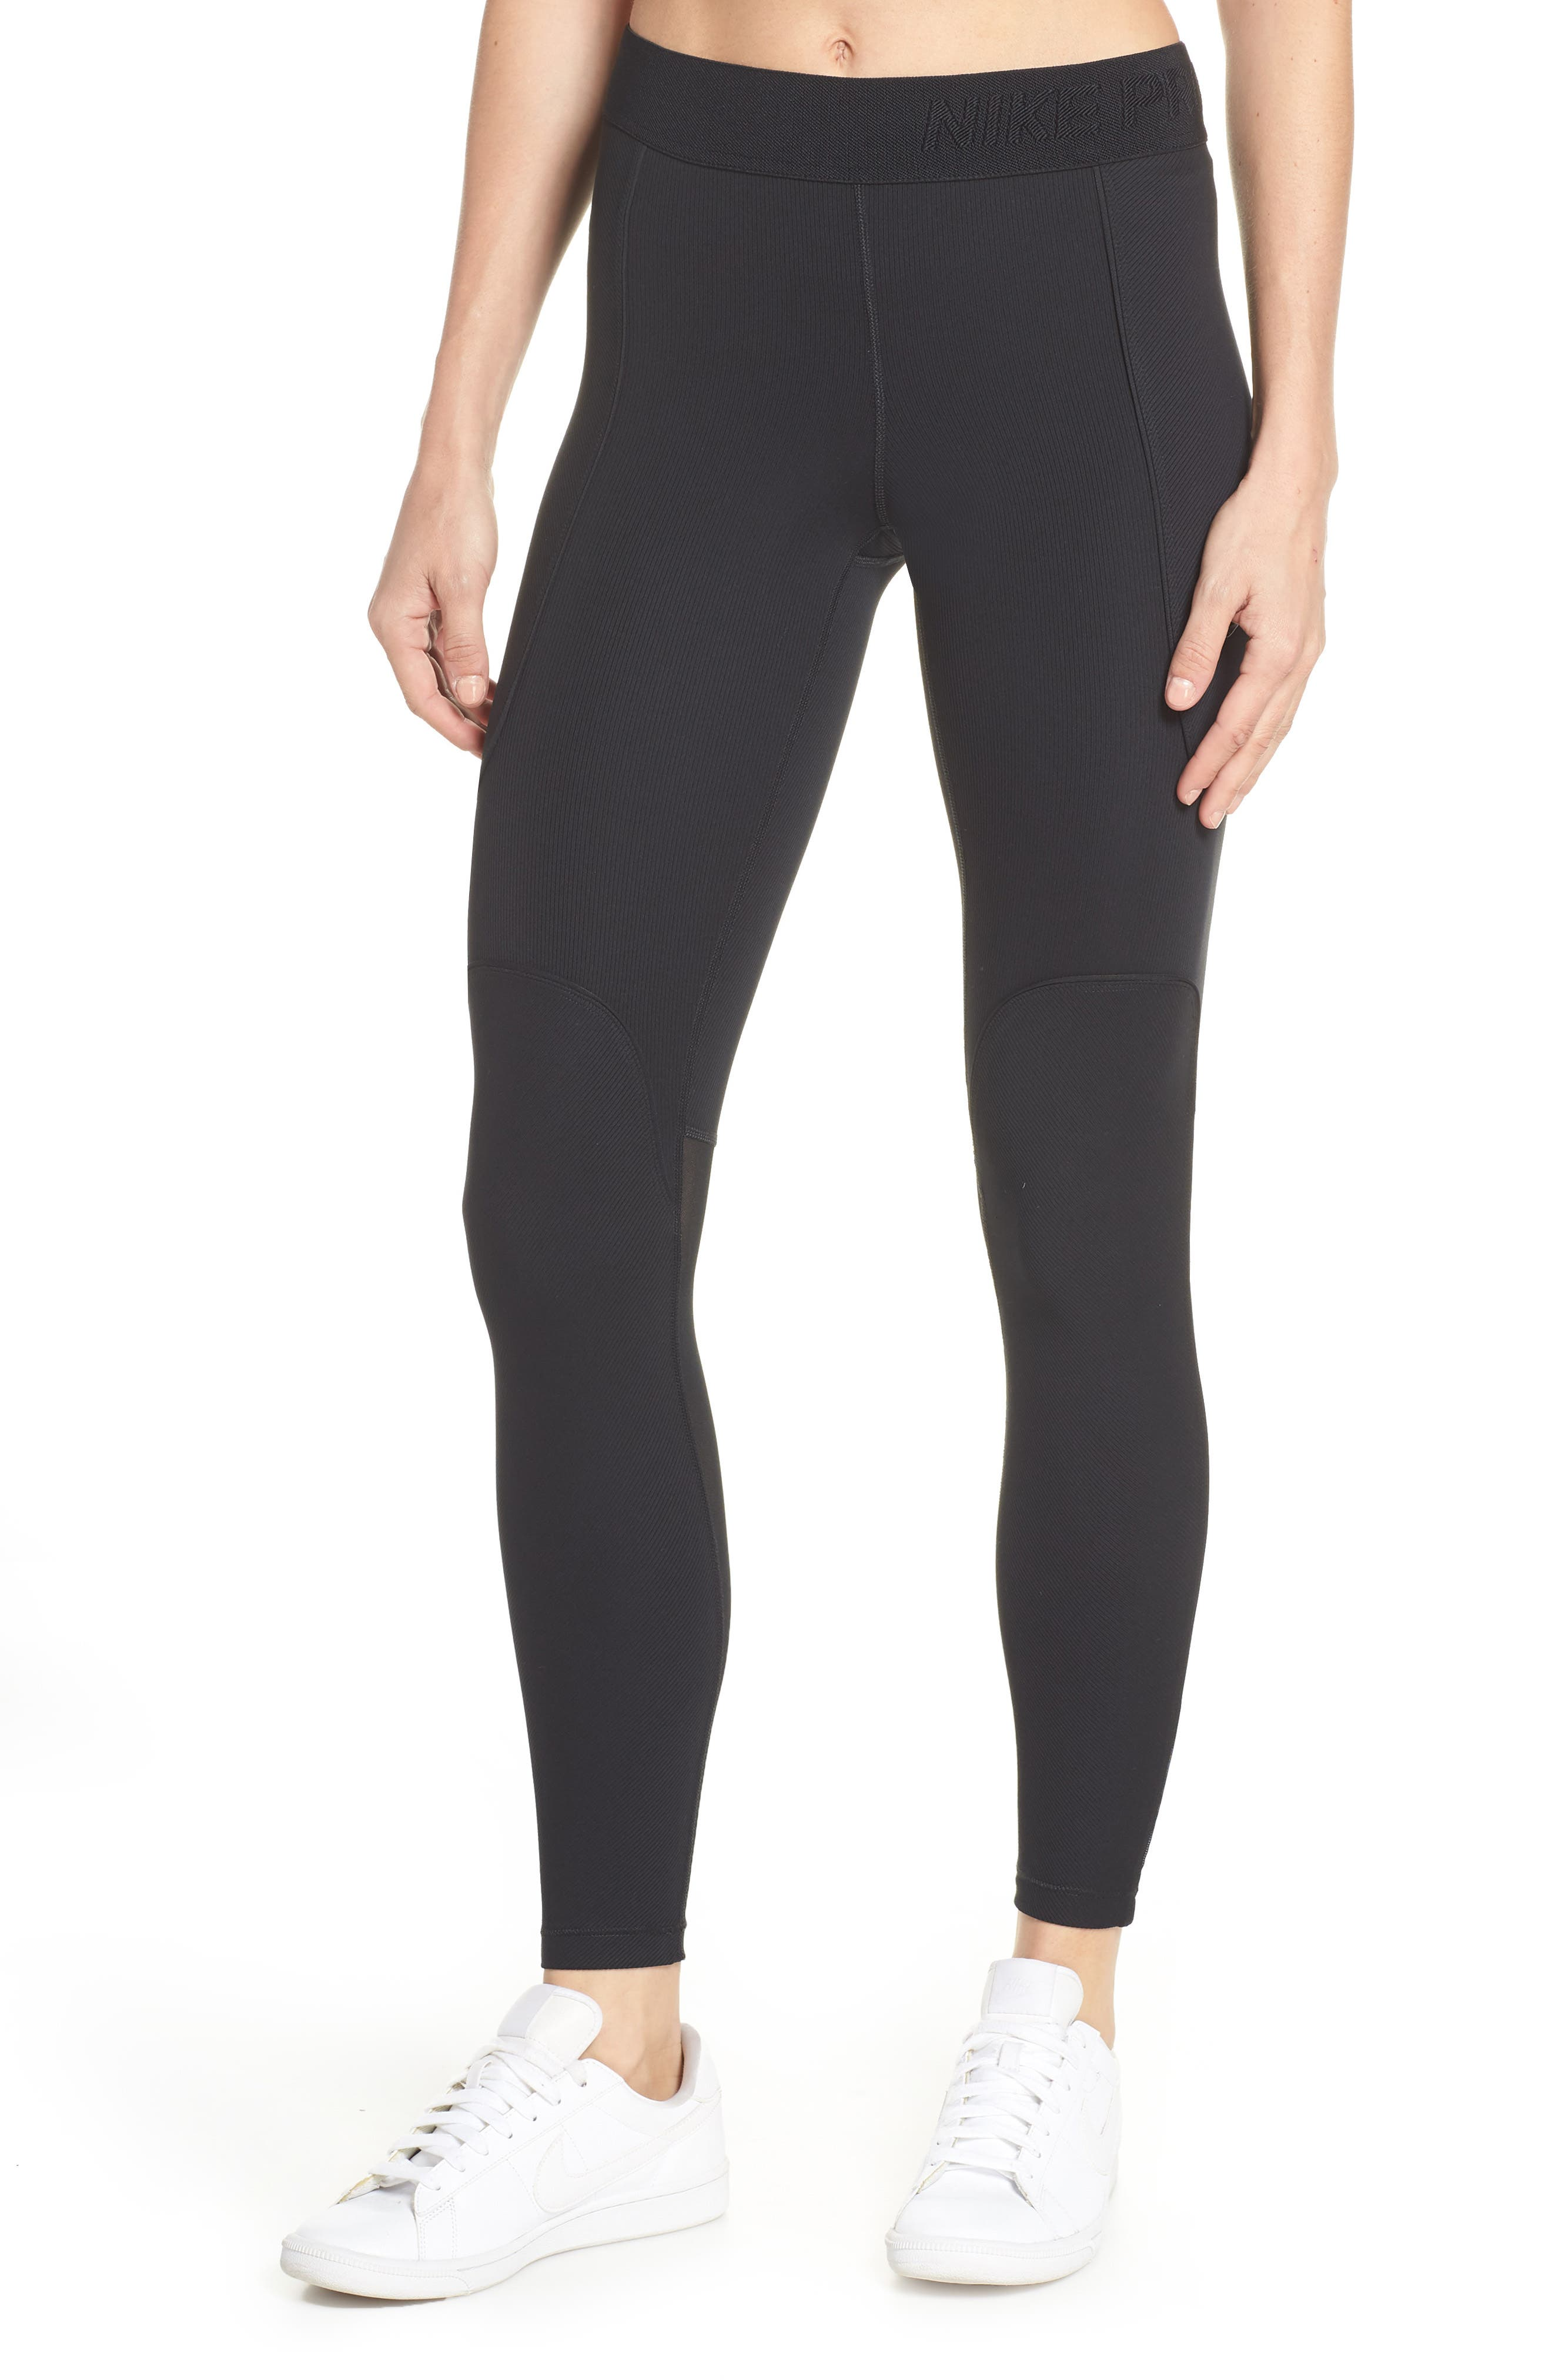 The Nike Pro HyperCool Women's Ribbed Tights,                             Main thumbnail 1, color,                             BLACK/ CLEAR